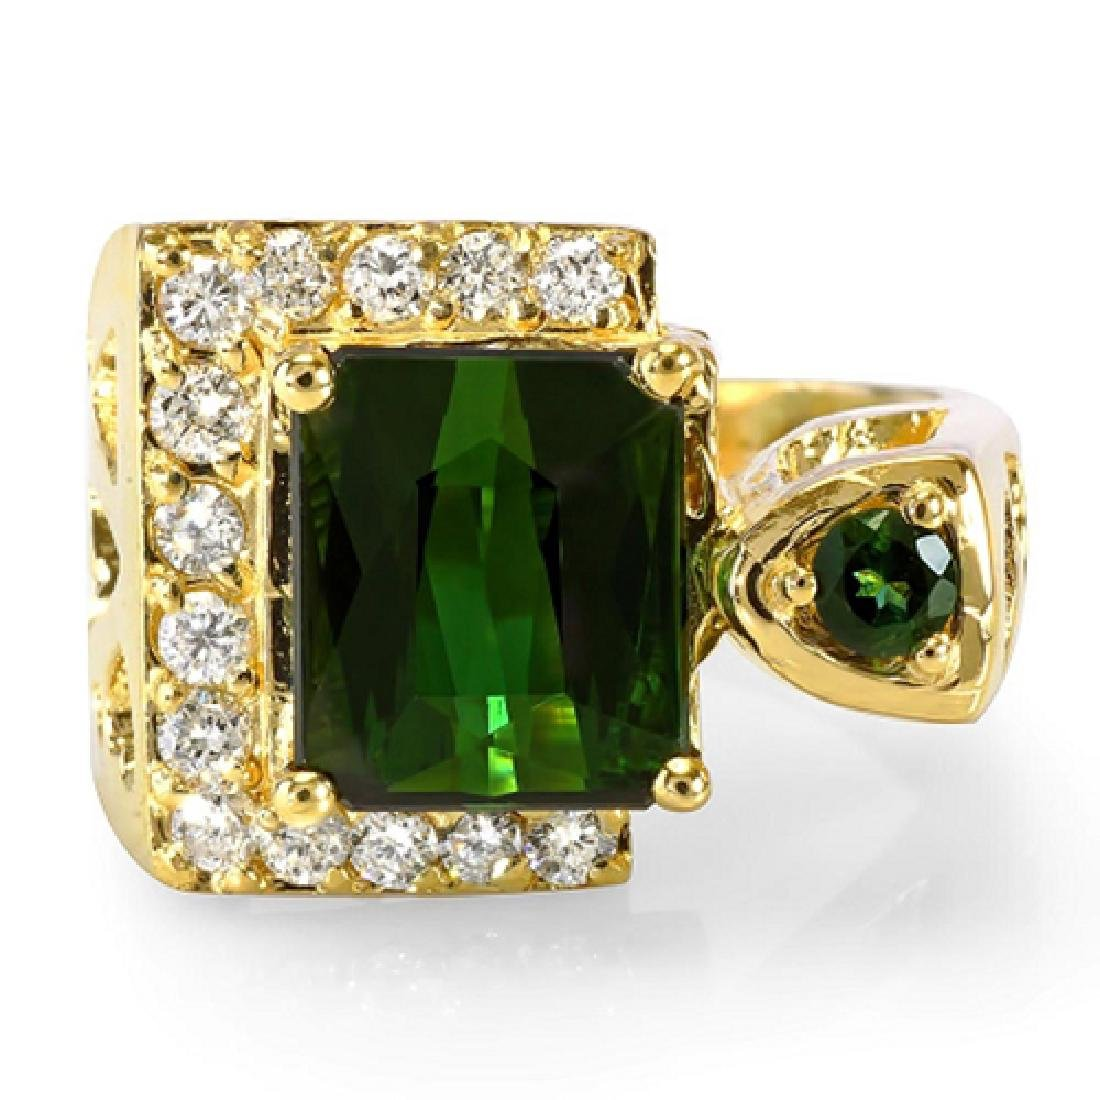 4.00 Carat Natural Tourmaline 18K Solid Yellow Gold